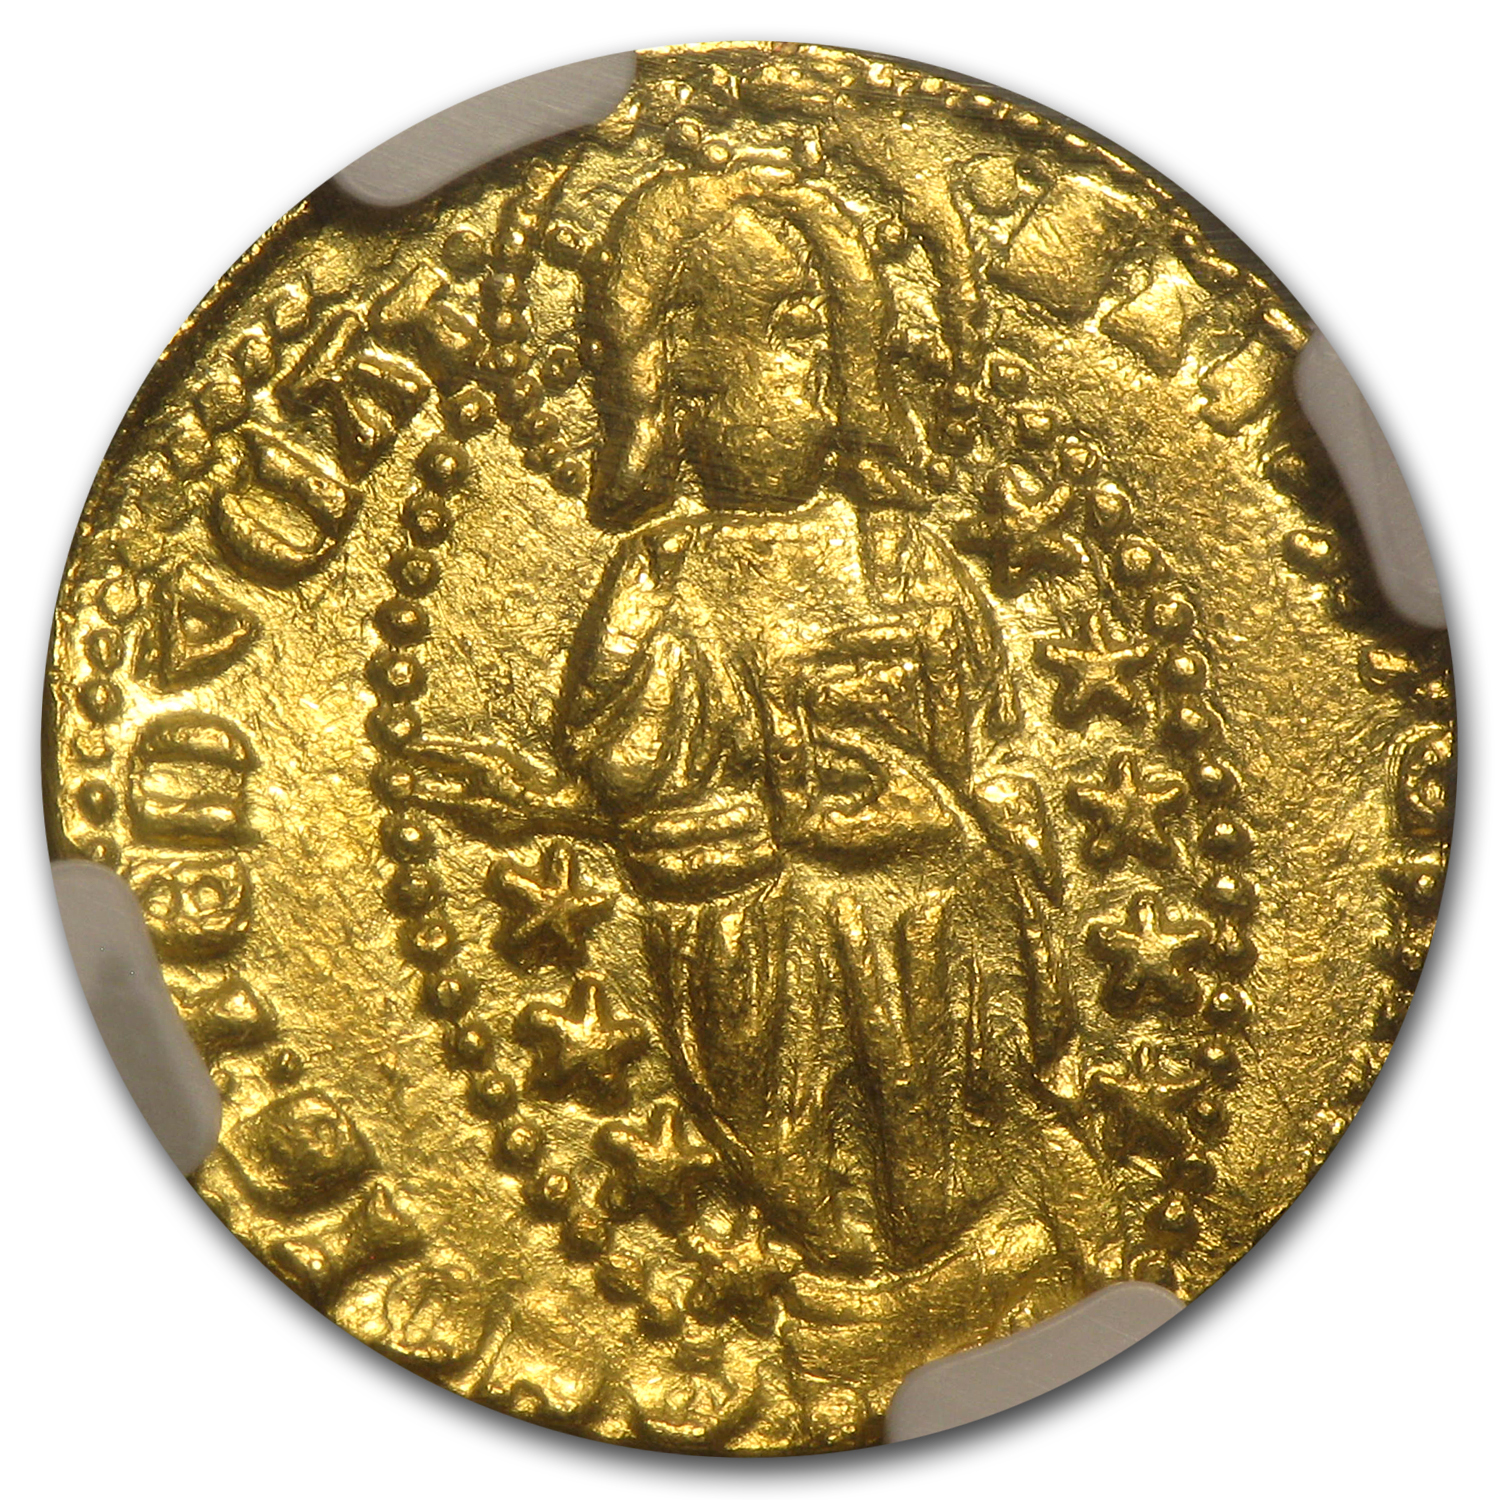 Greece (Chios) Gold Zecchino (1382-1400 AD) NGC MS-61